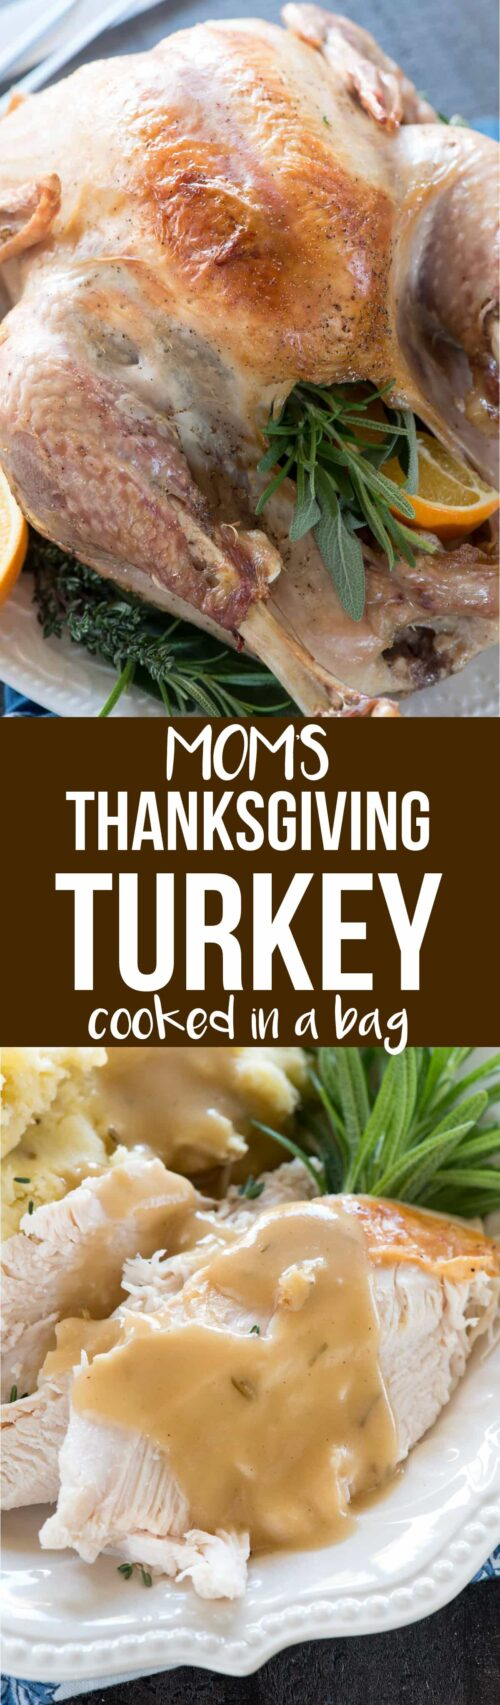 This is my Mom's Thanksgiving Turkey Recipe and it's cooked in an oven bag! It's moist every time with delicious flavor thanks to her secret baste recipe.